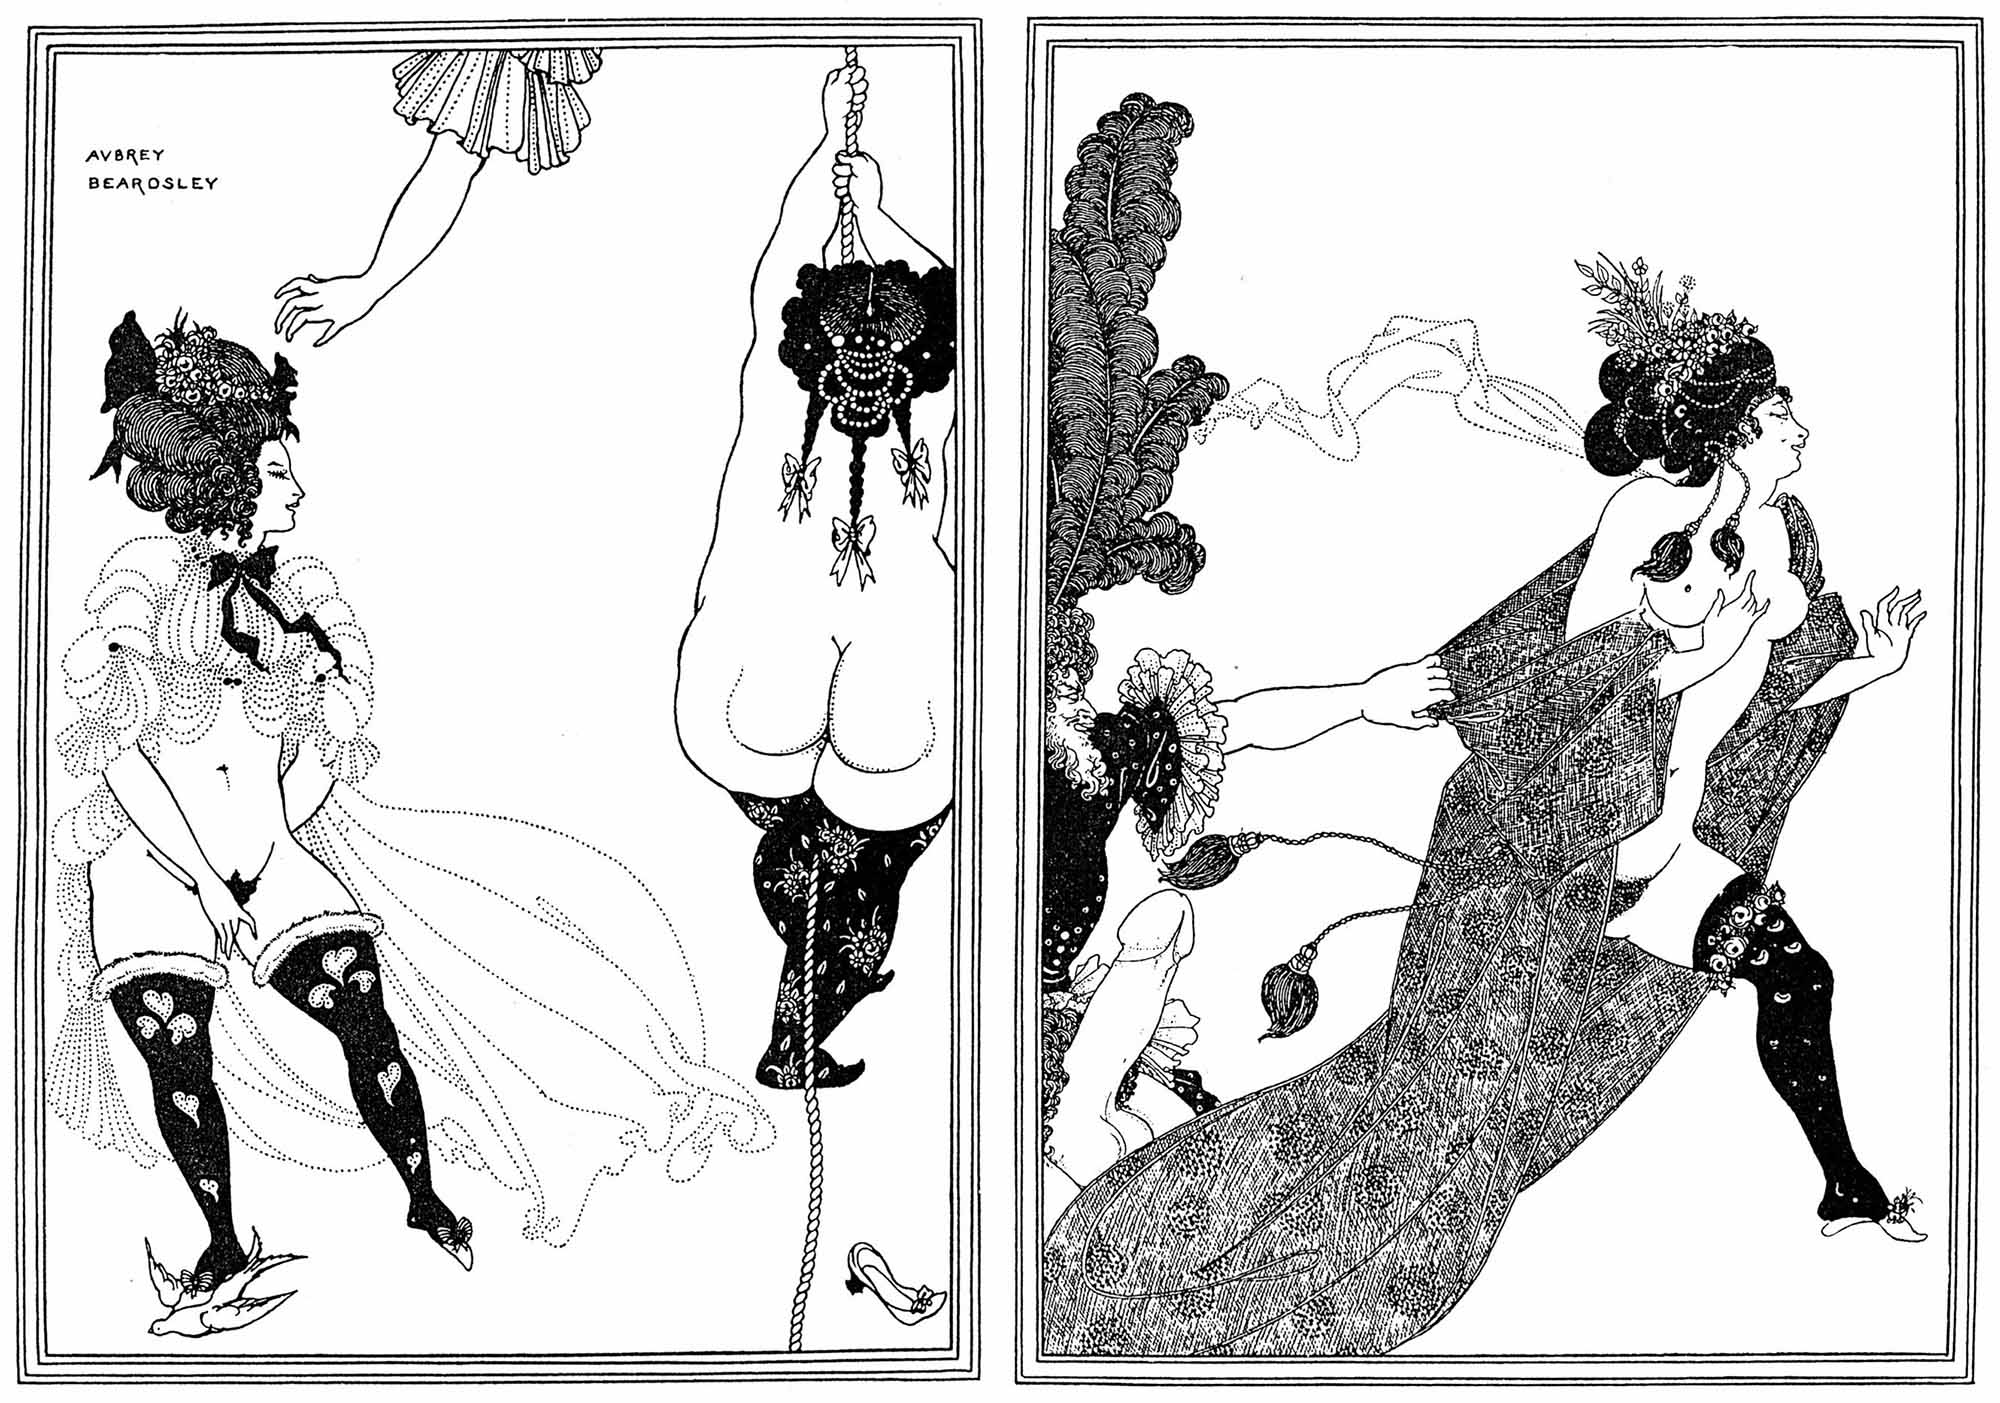 Aubrey Beardsley: Lysistrata | Images from www.ebooks.adelaide.edu.au (fair use)